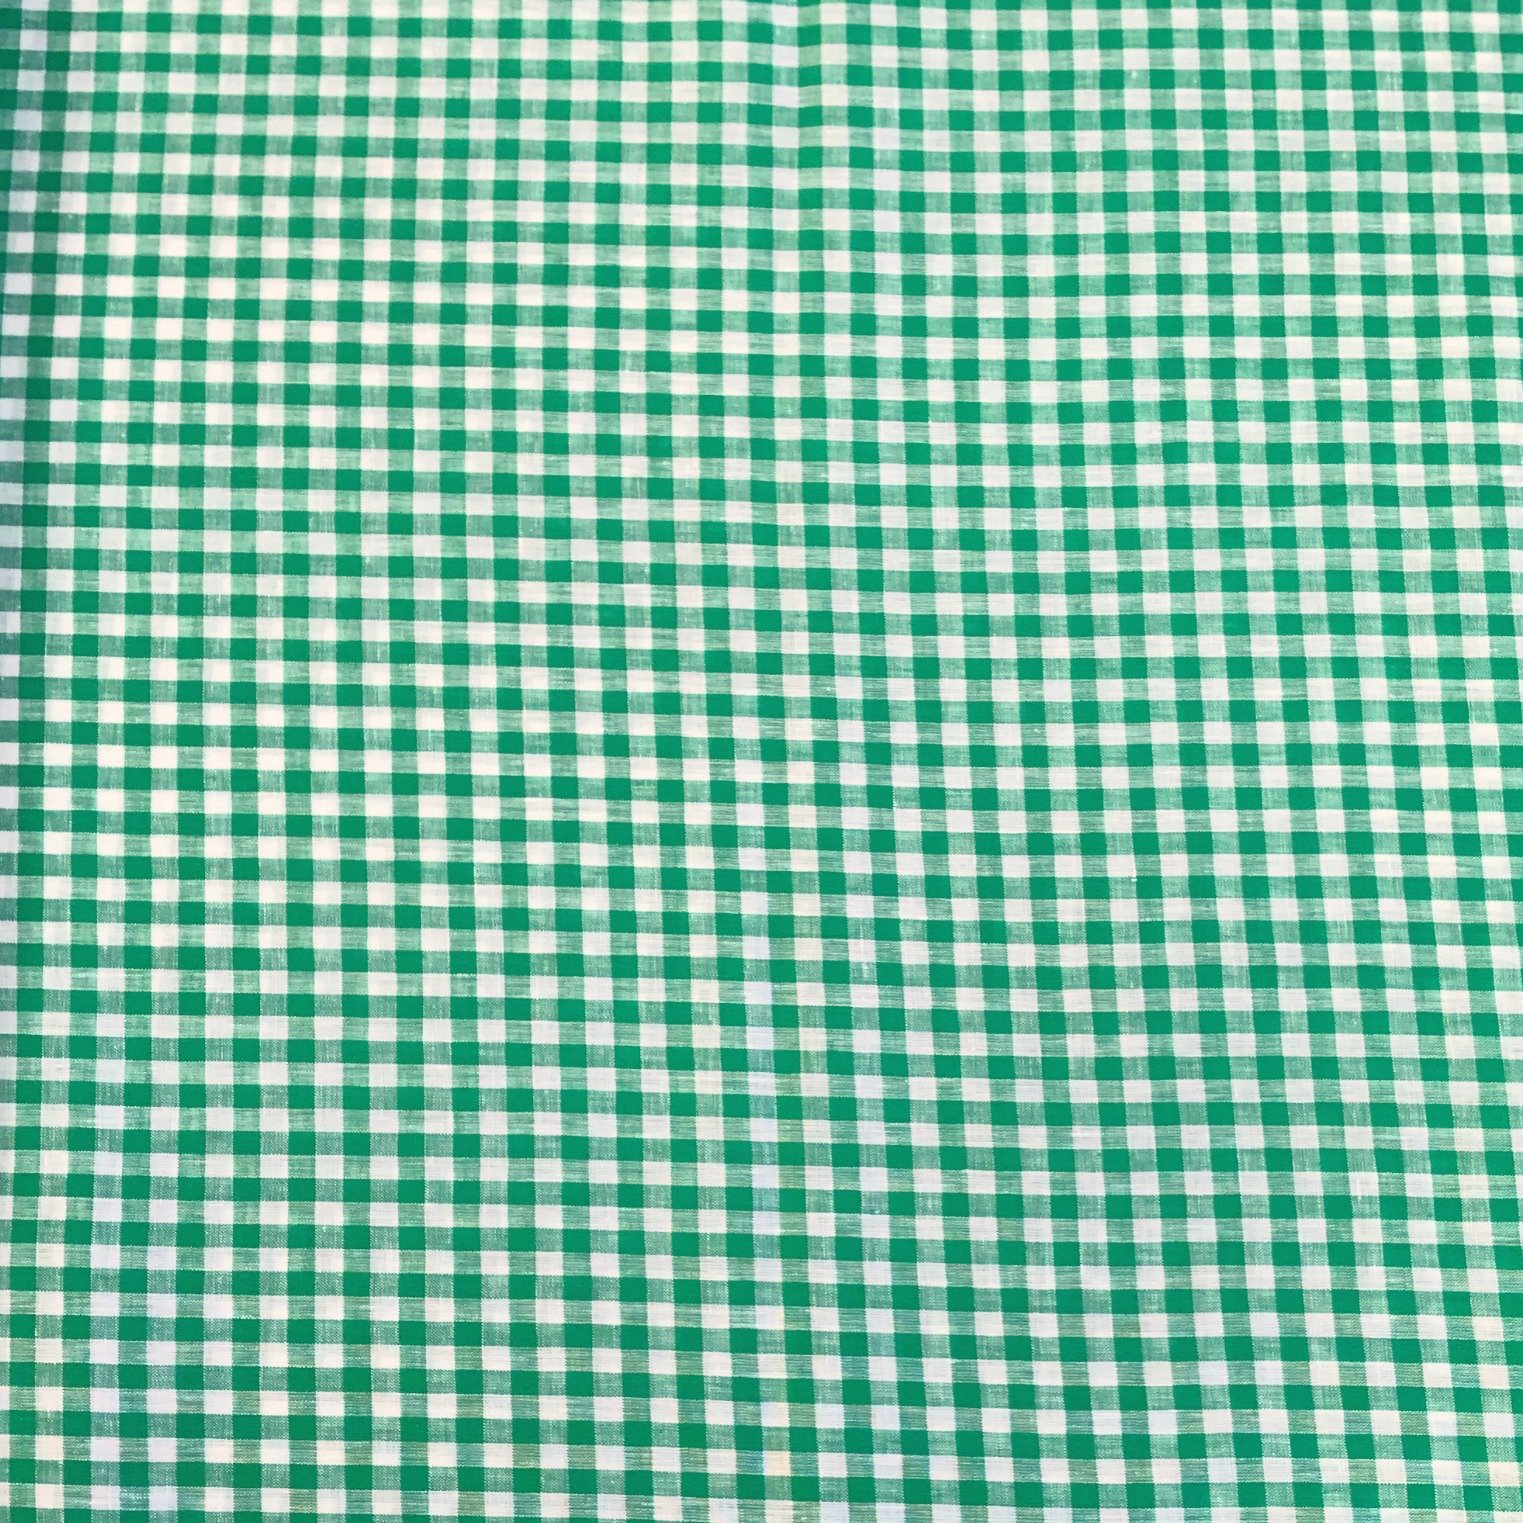 Linen Gingham Check - Kelly